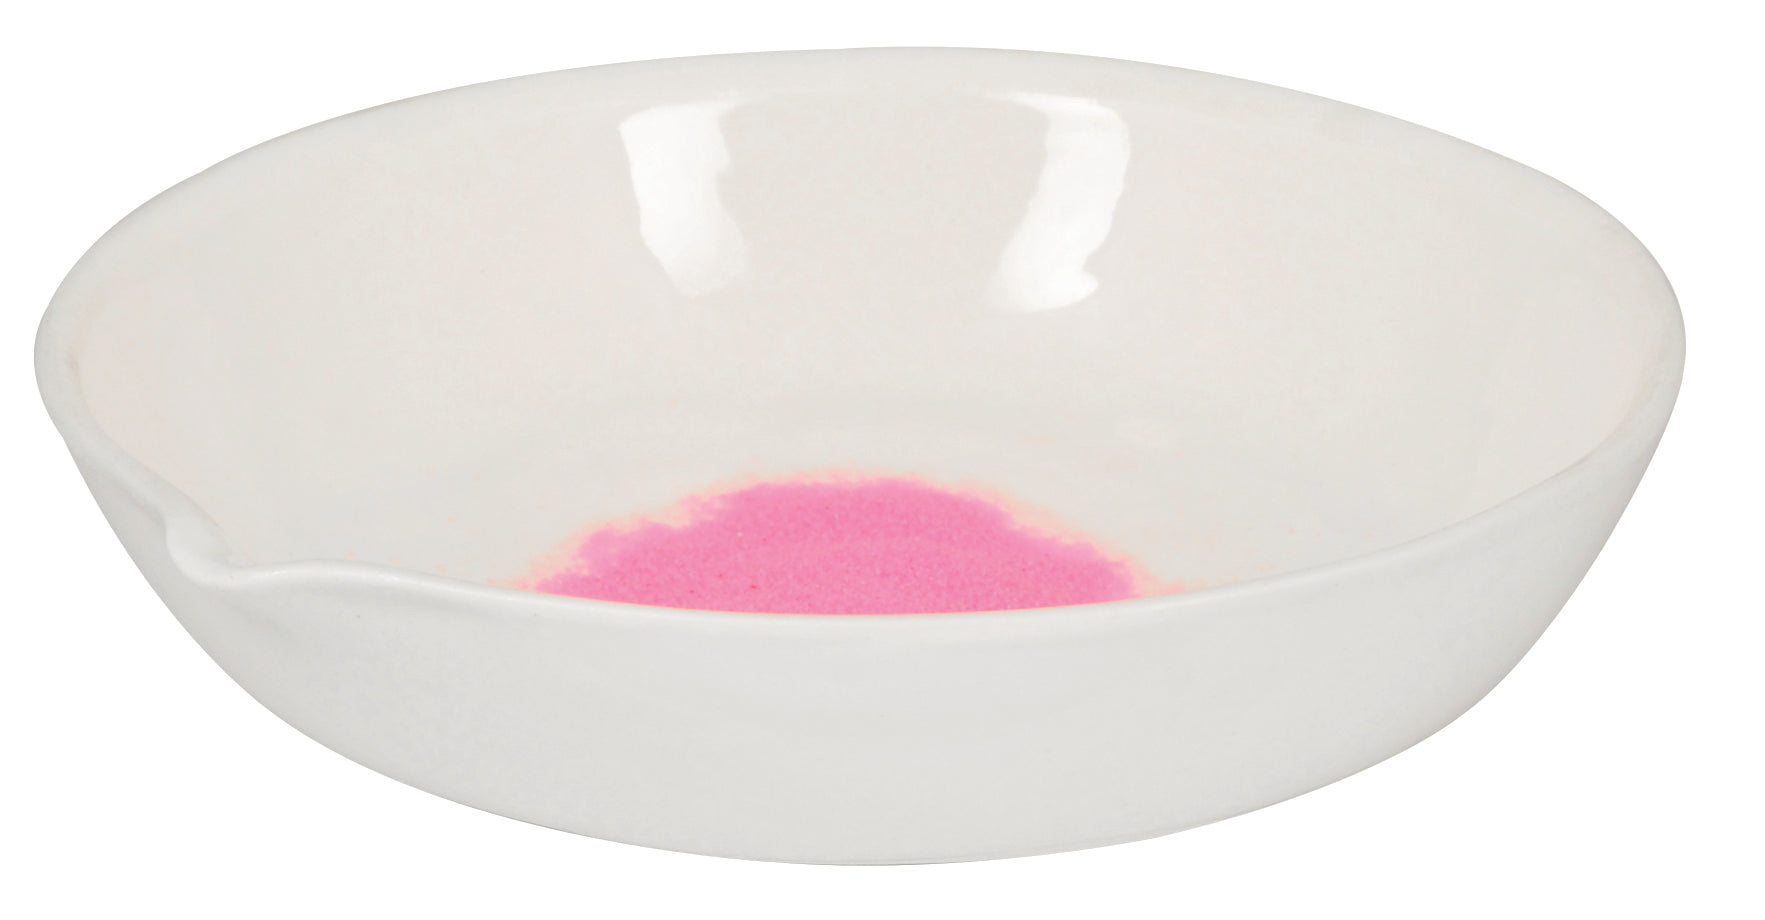 Basin Evaporating - Porcelain, flat form with spout, 100 ml